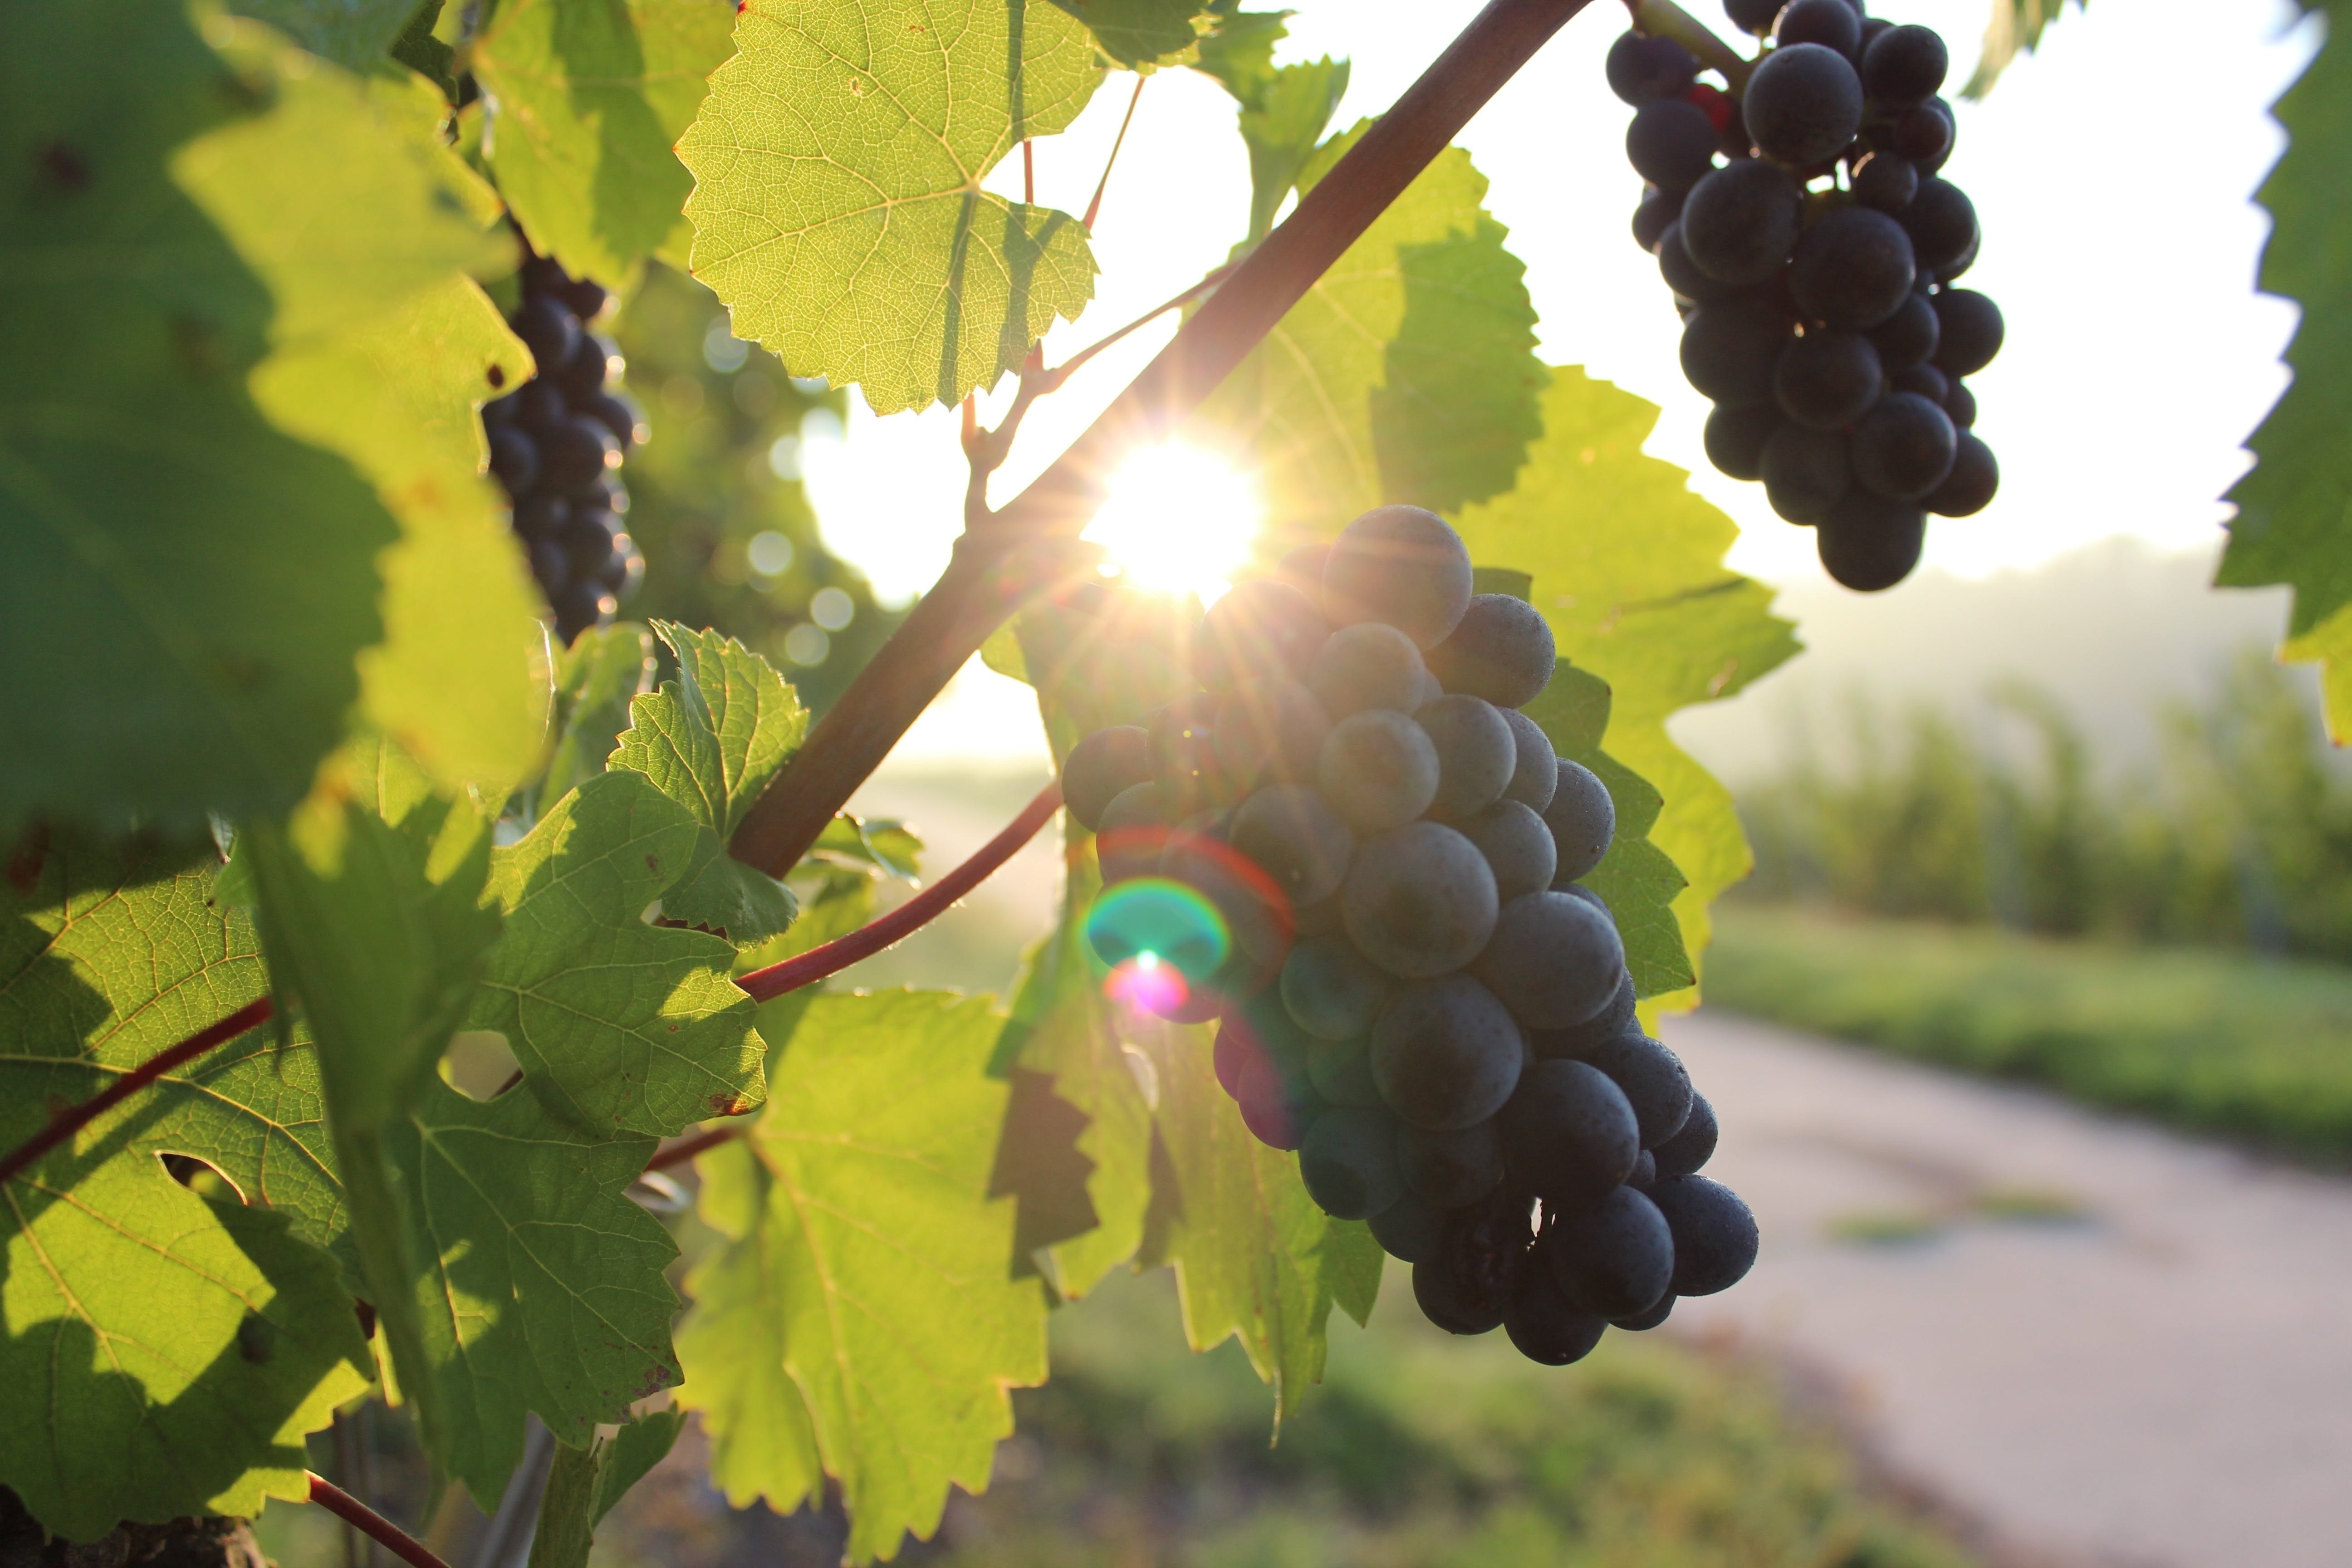 Free stock photo of nature, agriculture, farm, grapes